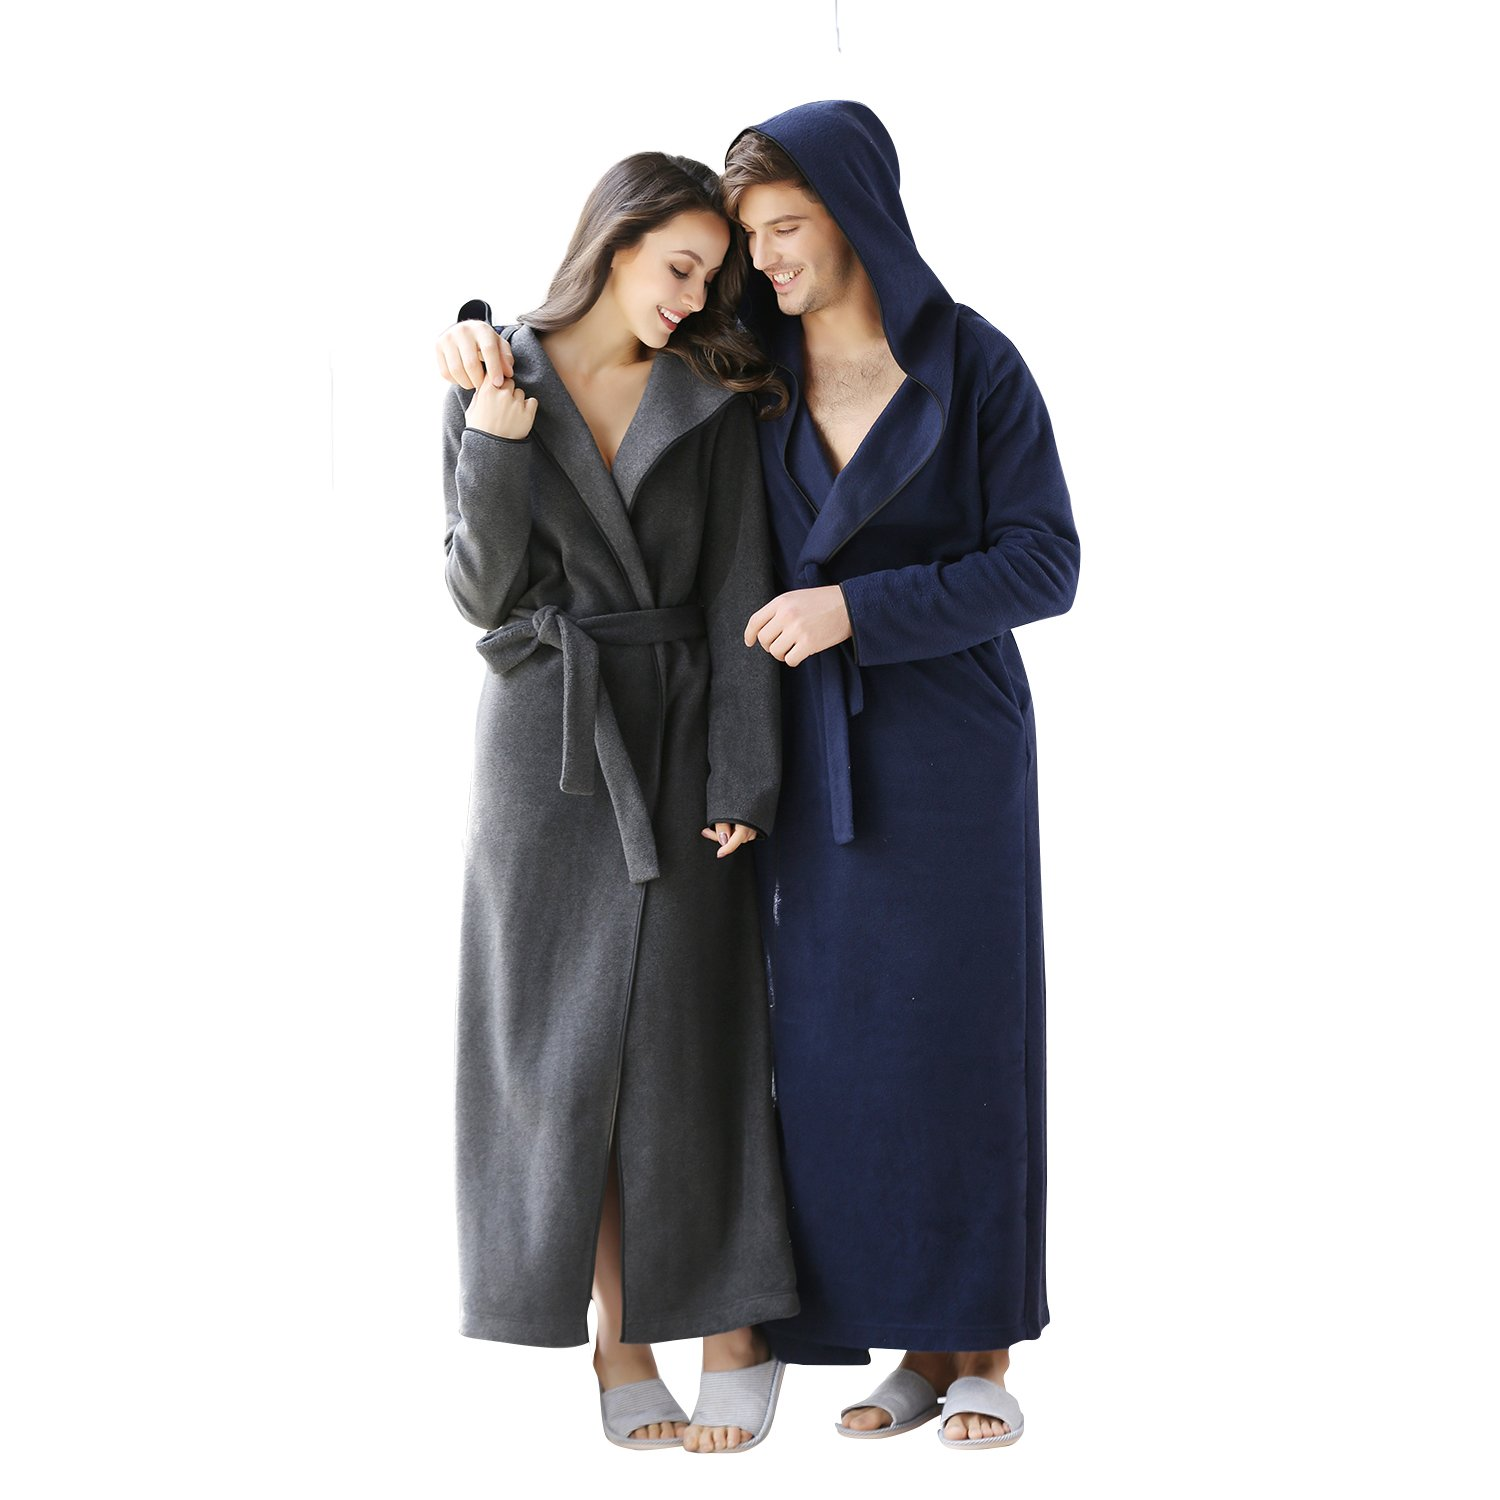 7 VEILS Women and Men Microfleece Ultra Long Floor-Length Hooded Bathrobes-Dark Gray-XL 1708NO3108